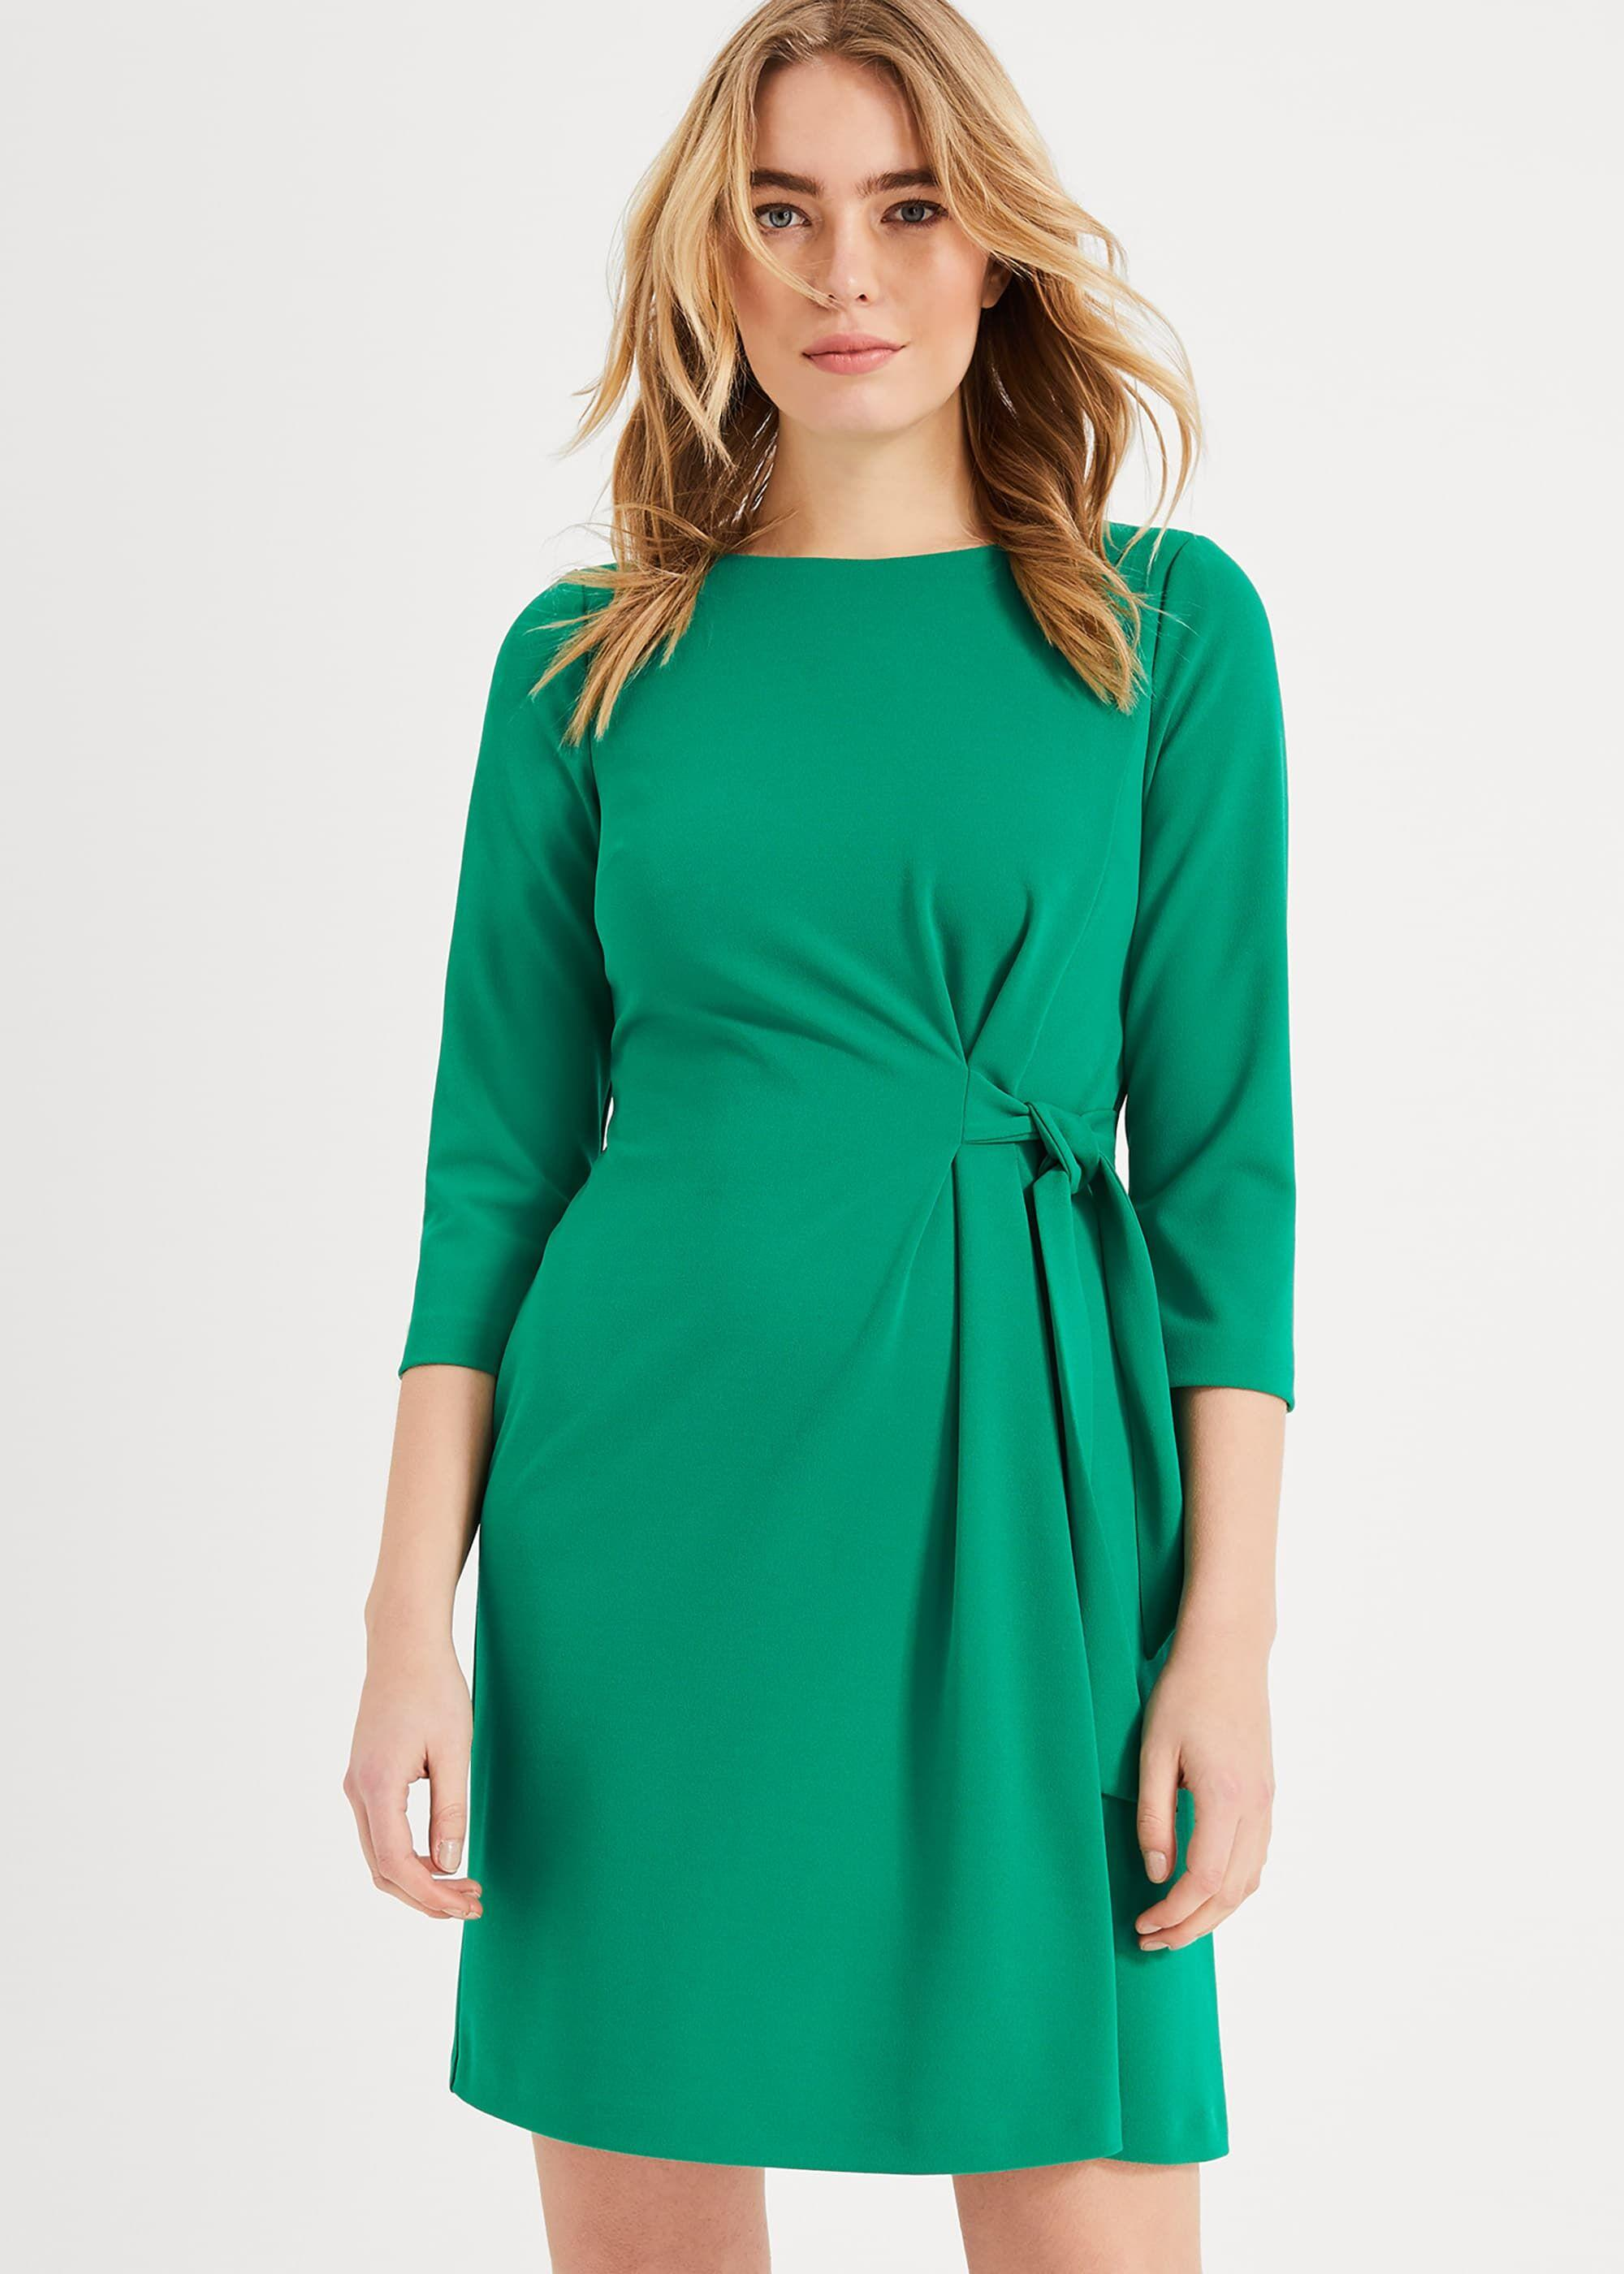 d12b83e4fc1 Phase Eight Thelma Tie Side Dress in Green - Save 20% - Lyst